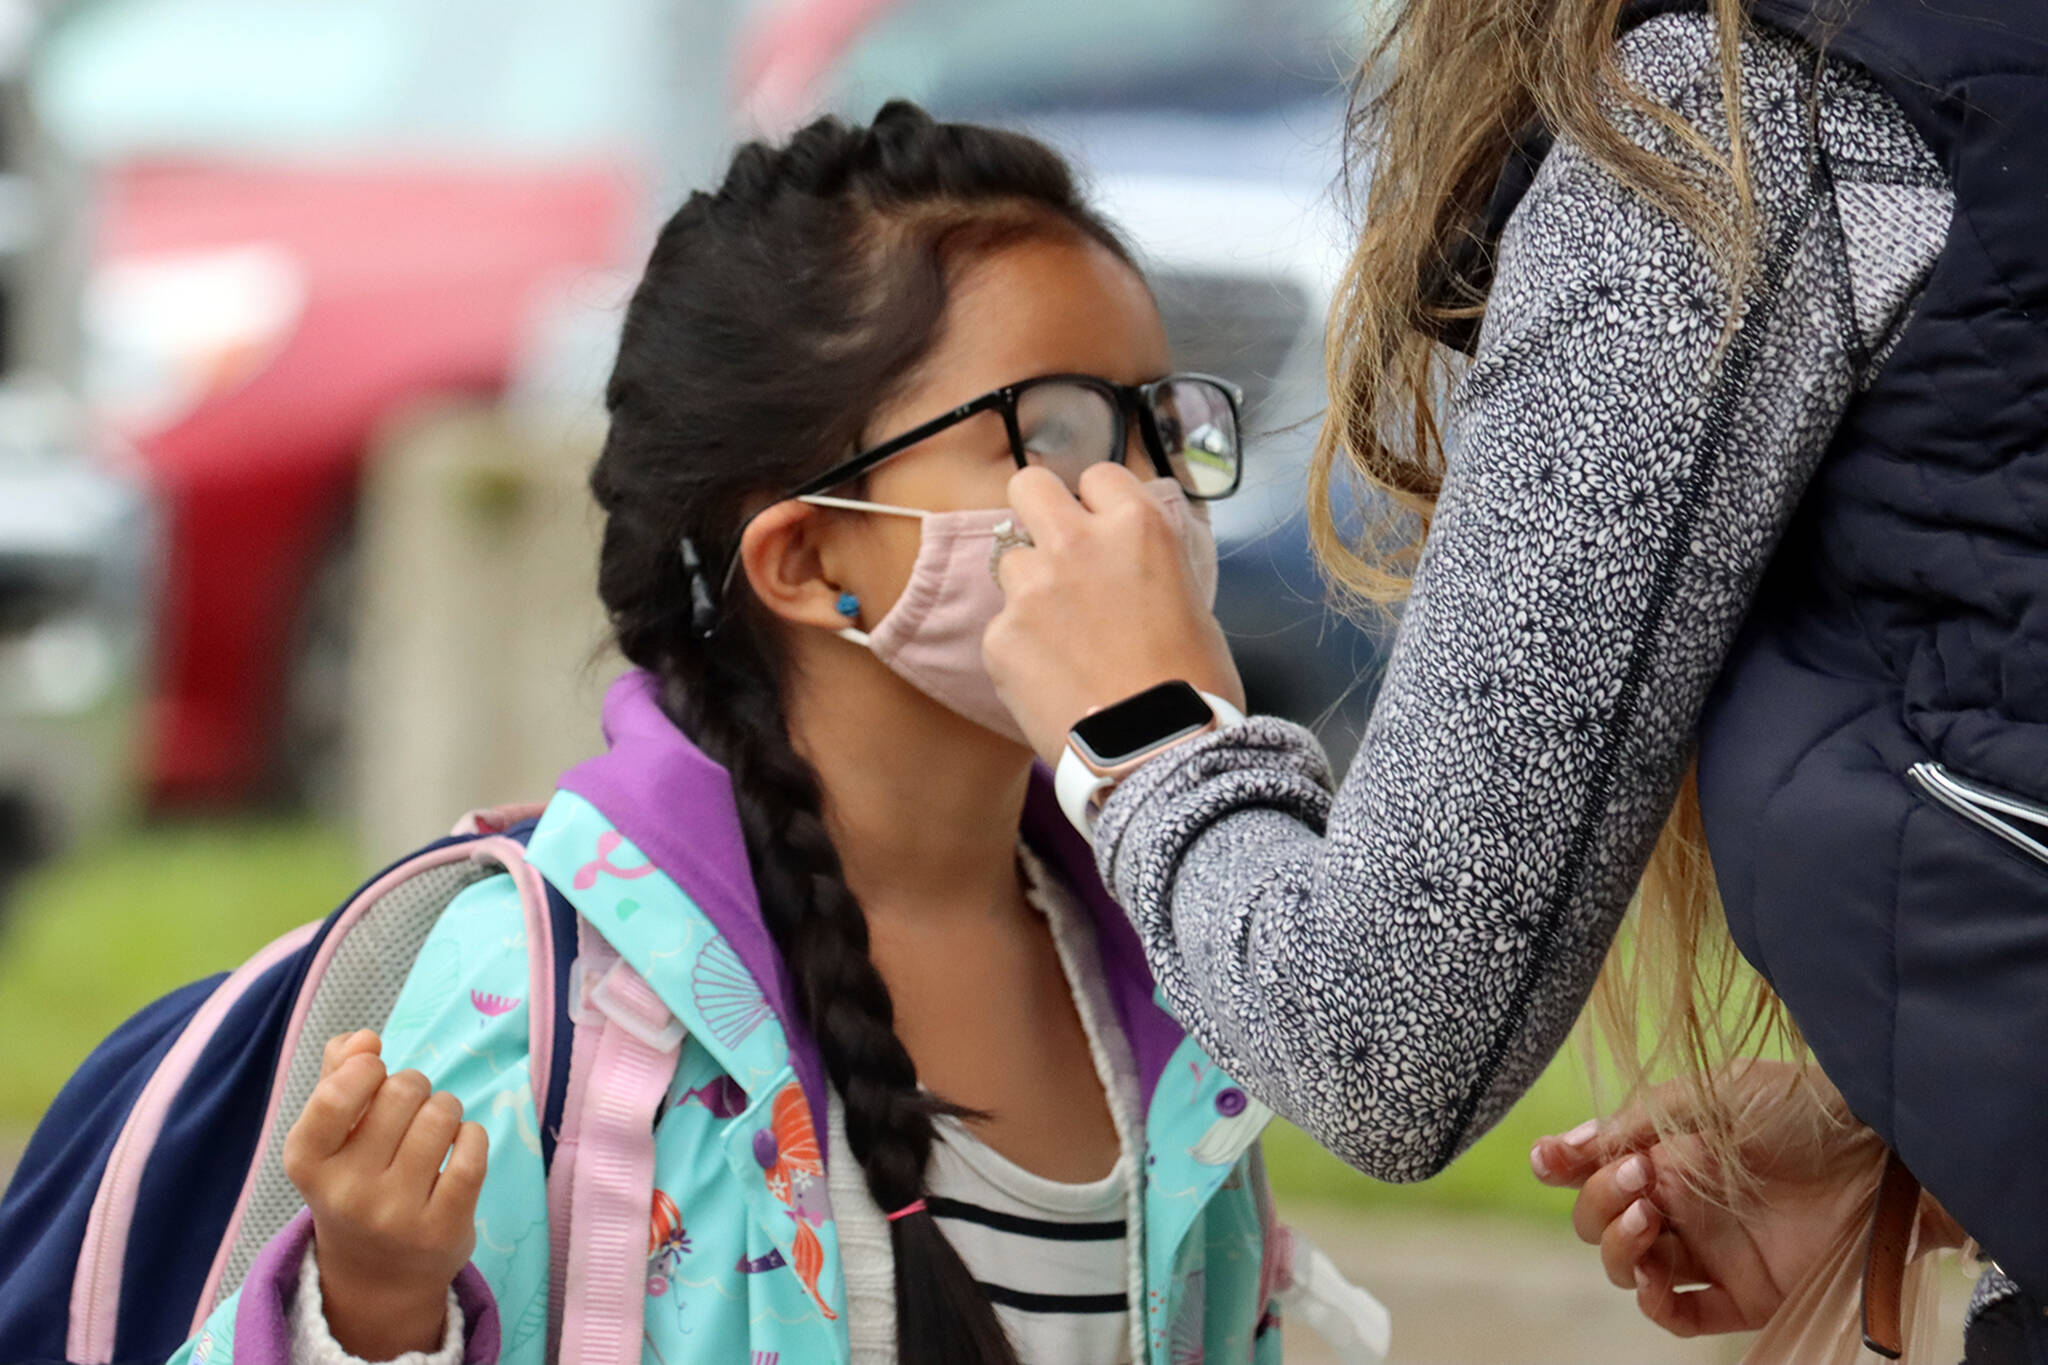 A second-grader has her mask adjusted before heading into school for the day. (Black Press Media file photo)